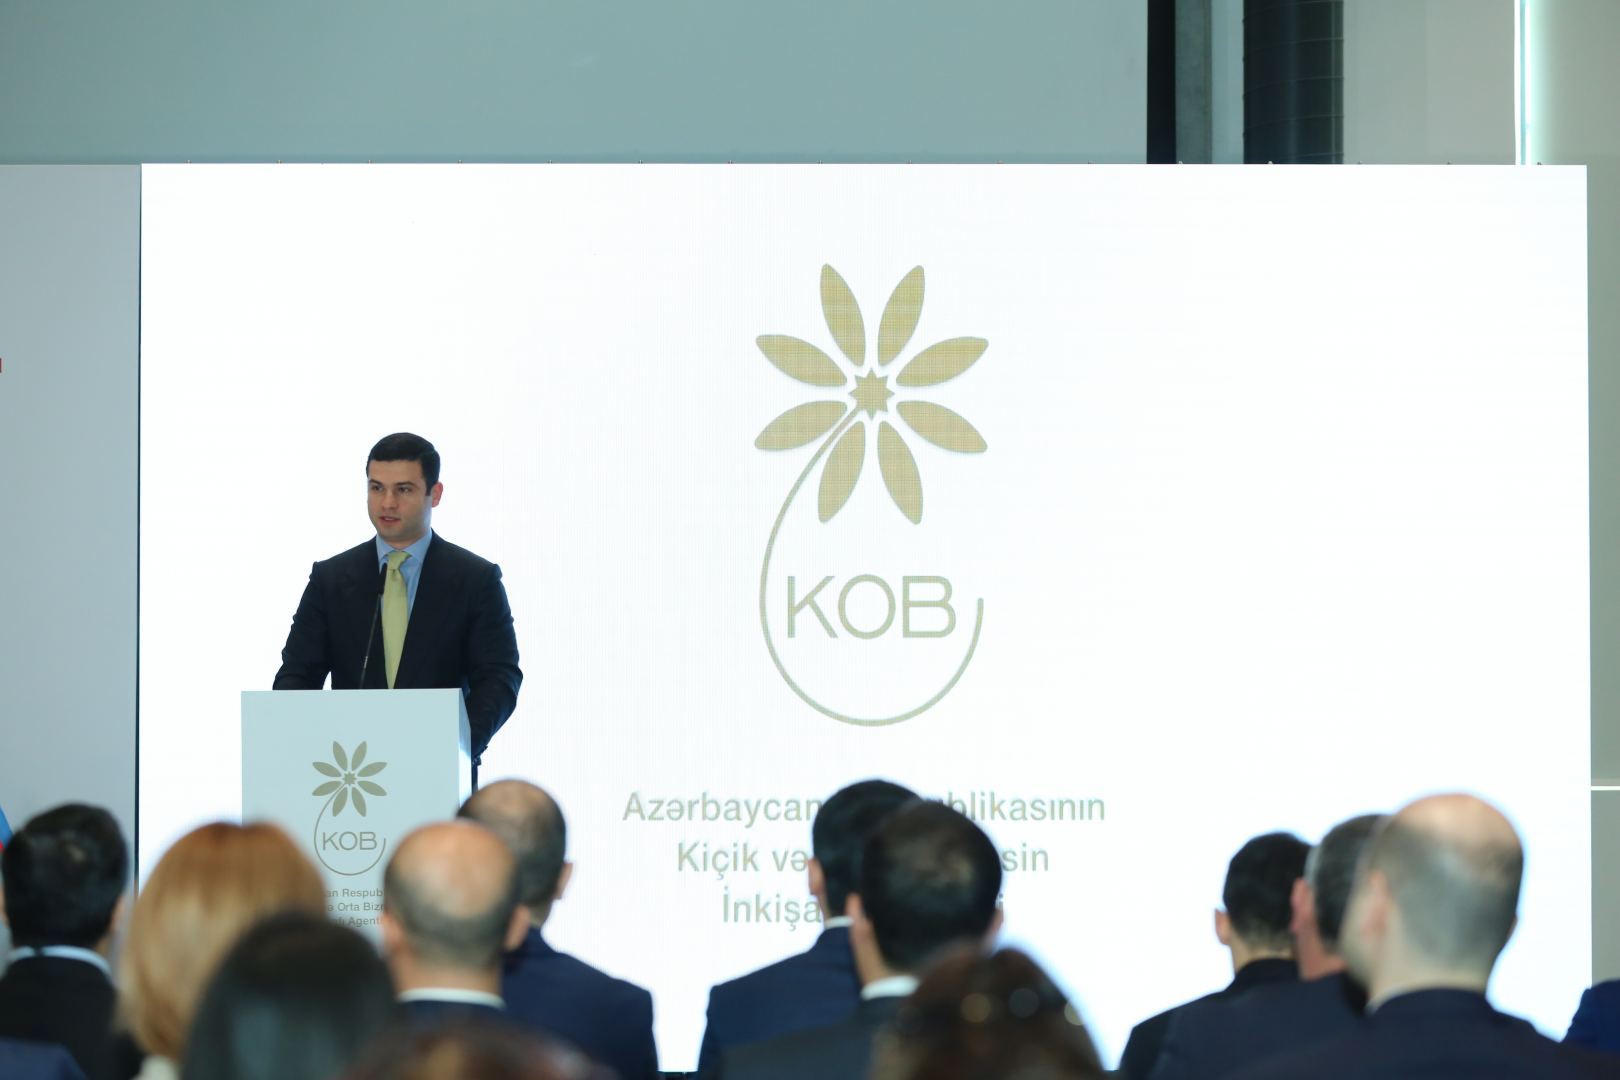 Azerbaijan's potential for entrepreneurship in culture & art sector highlighted